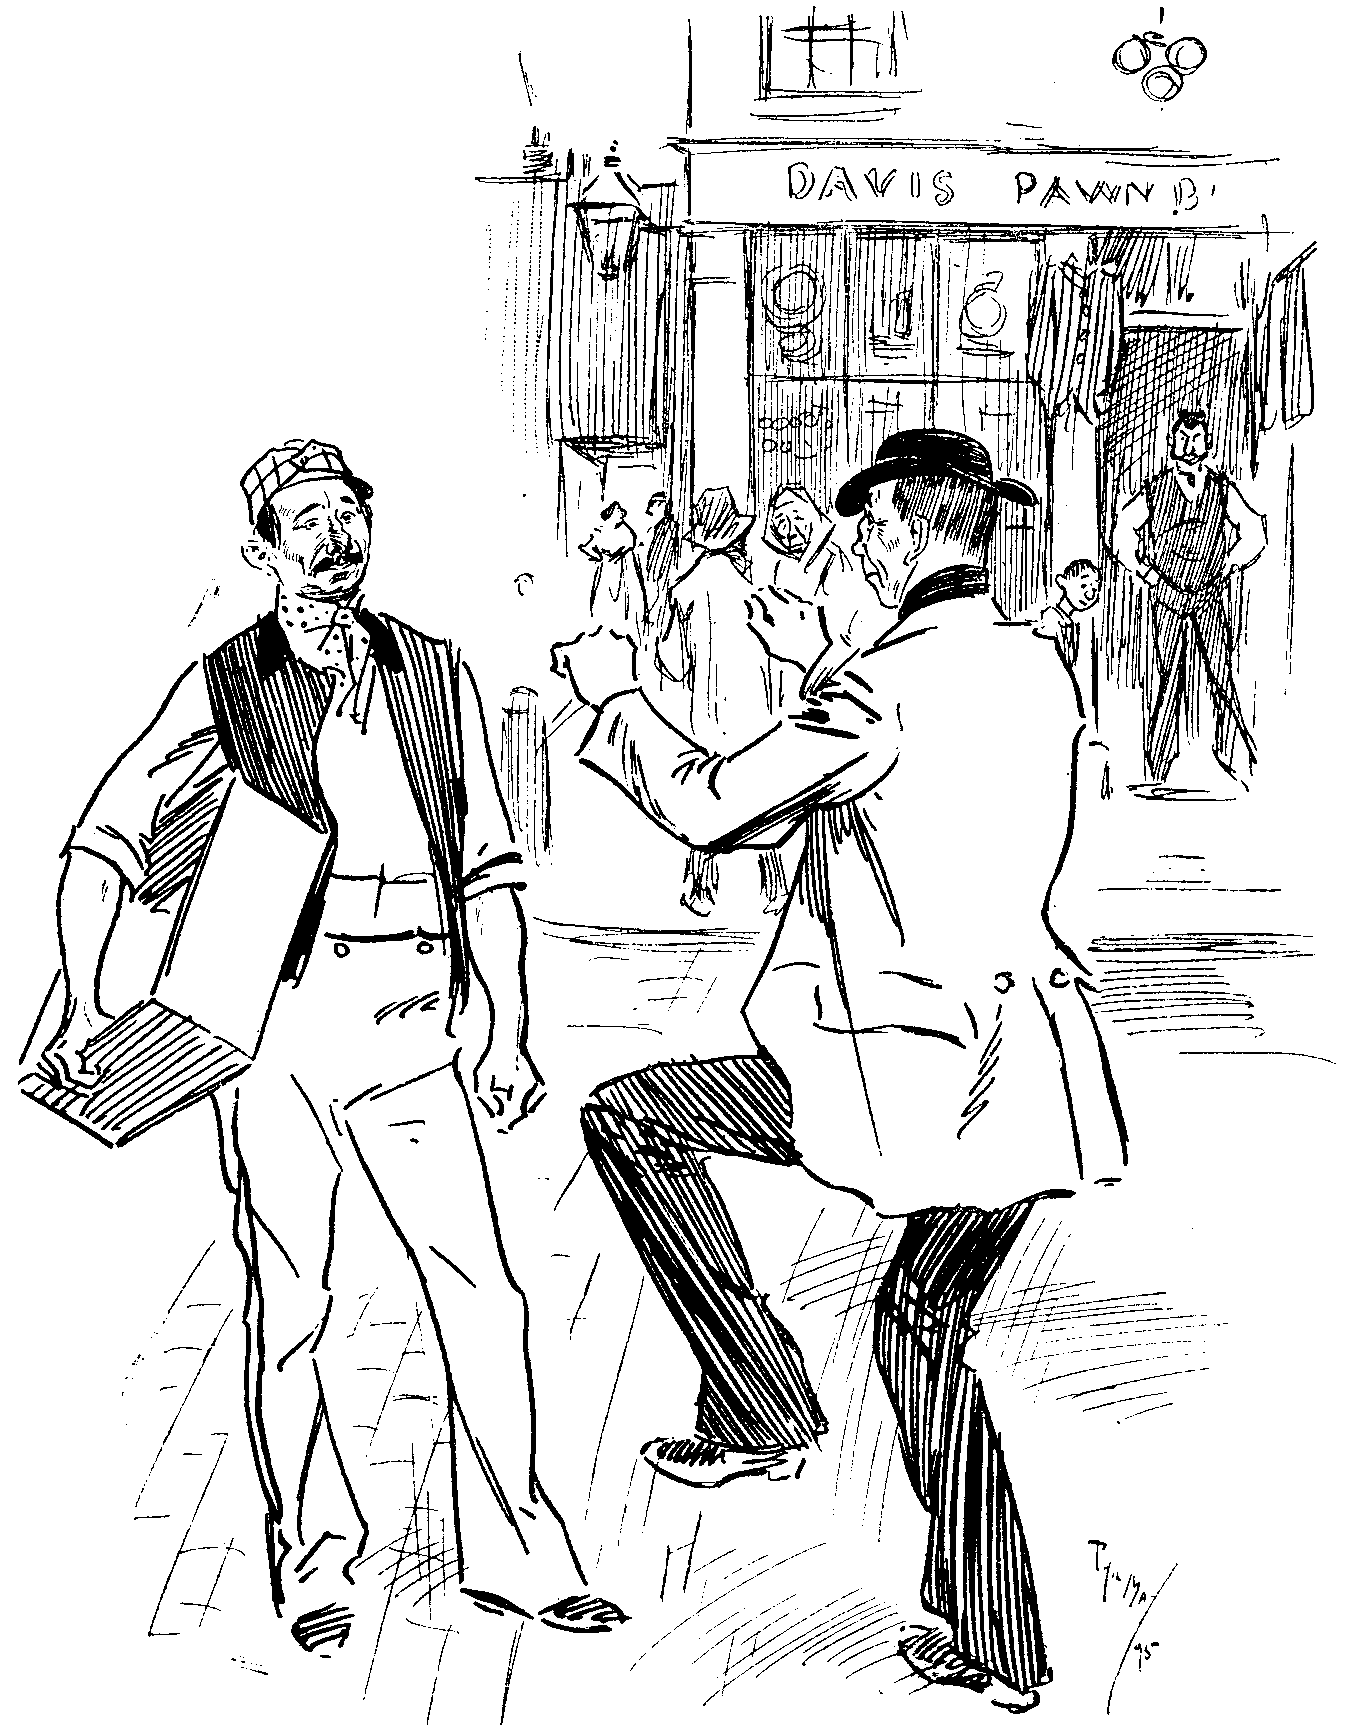 177 the project gutenberg ebook of punch, october 12, 1895 on template letter requesting waiver of service of summons